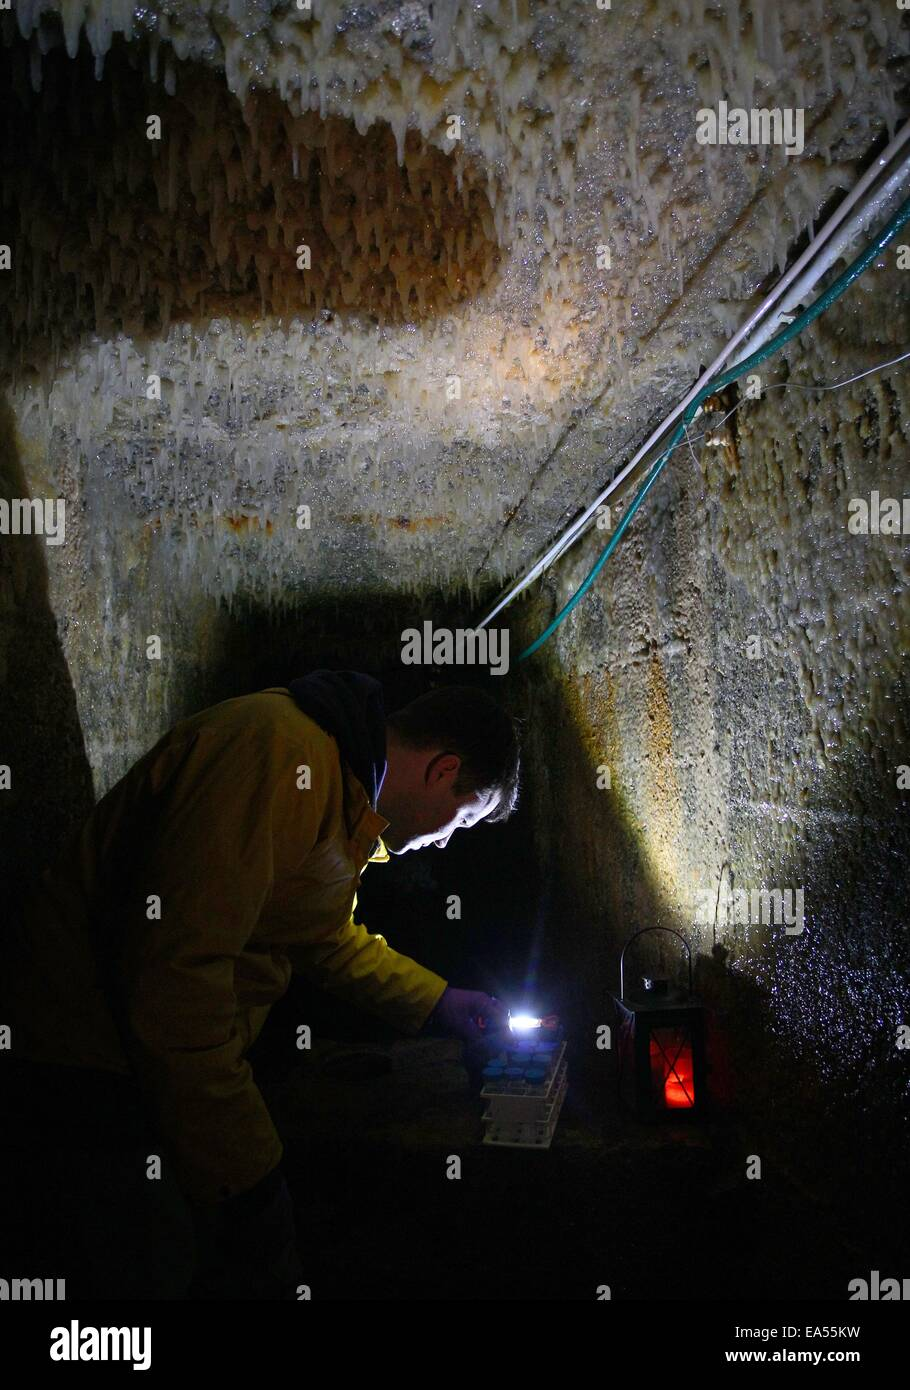 Sulzbrunn, Germany. 03rd Nov, 2014. Doctorand Clemens Karwautz examines the mucous dripstones at the ceiling of - Stock Image